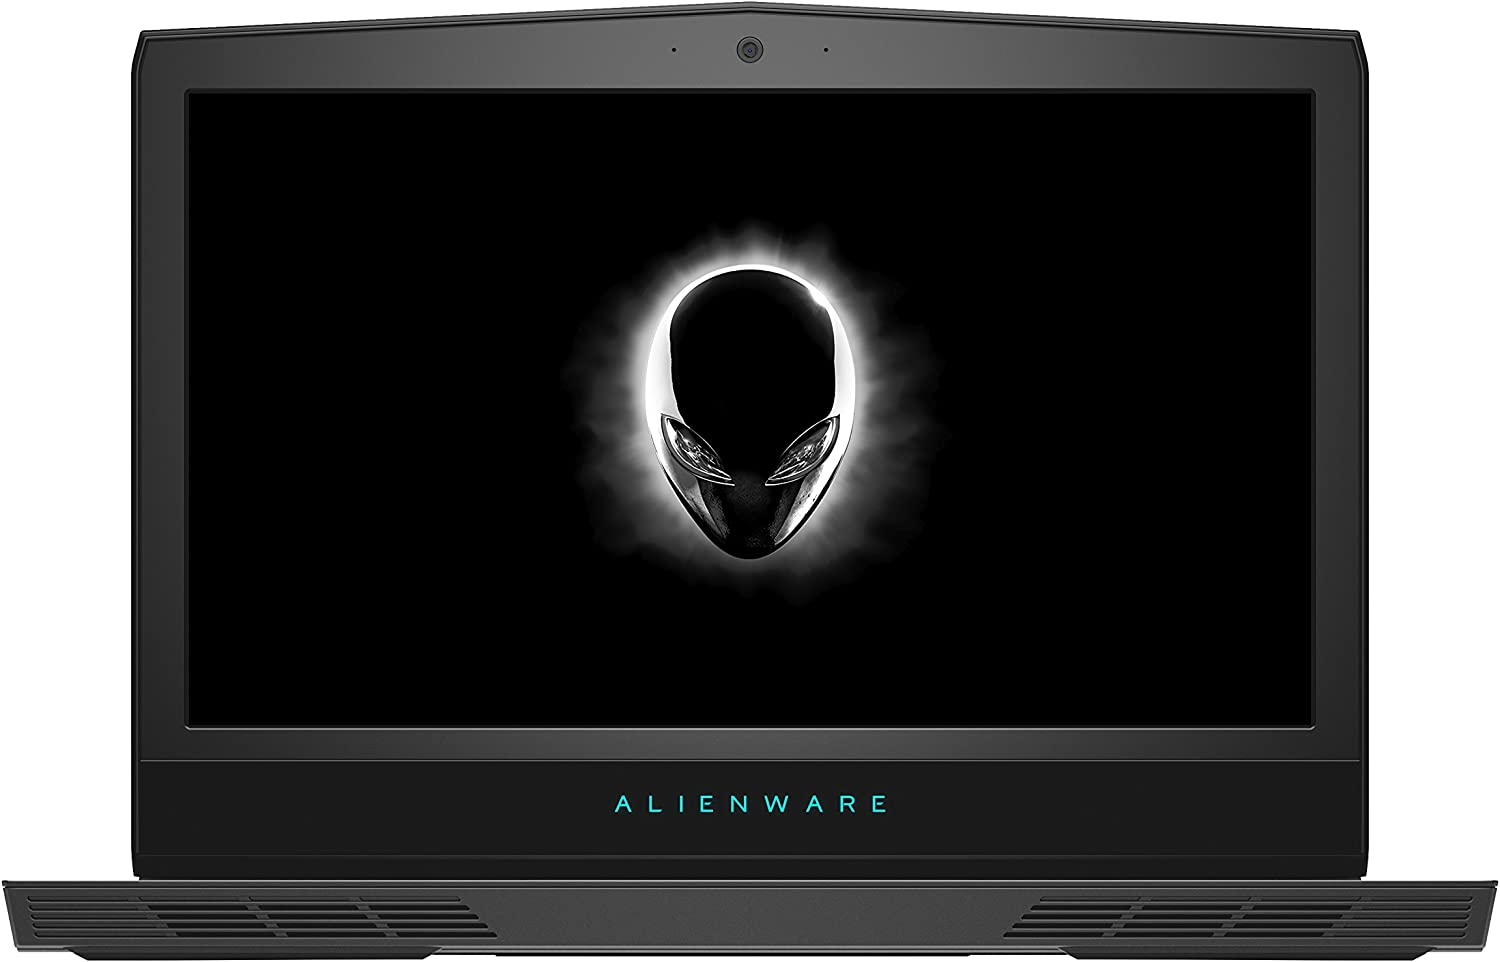 "Alienware 17 R5 AW17R5, 17.3"" FHD, Intel Core i7-8750H, GTX 1070 Graphics, 16GB DDR4 Ram, 256GB SSD+1TB HDD, Windows 10"